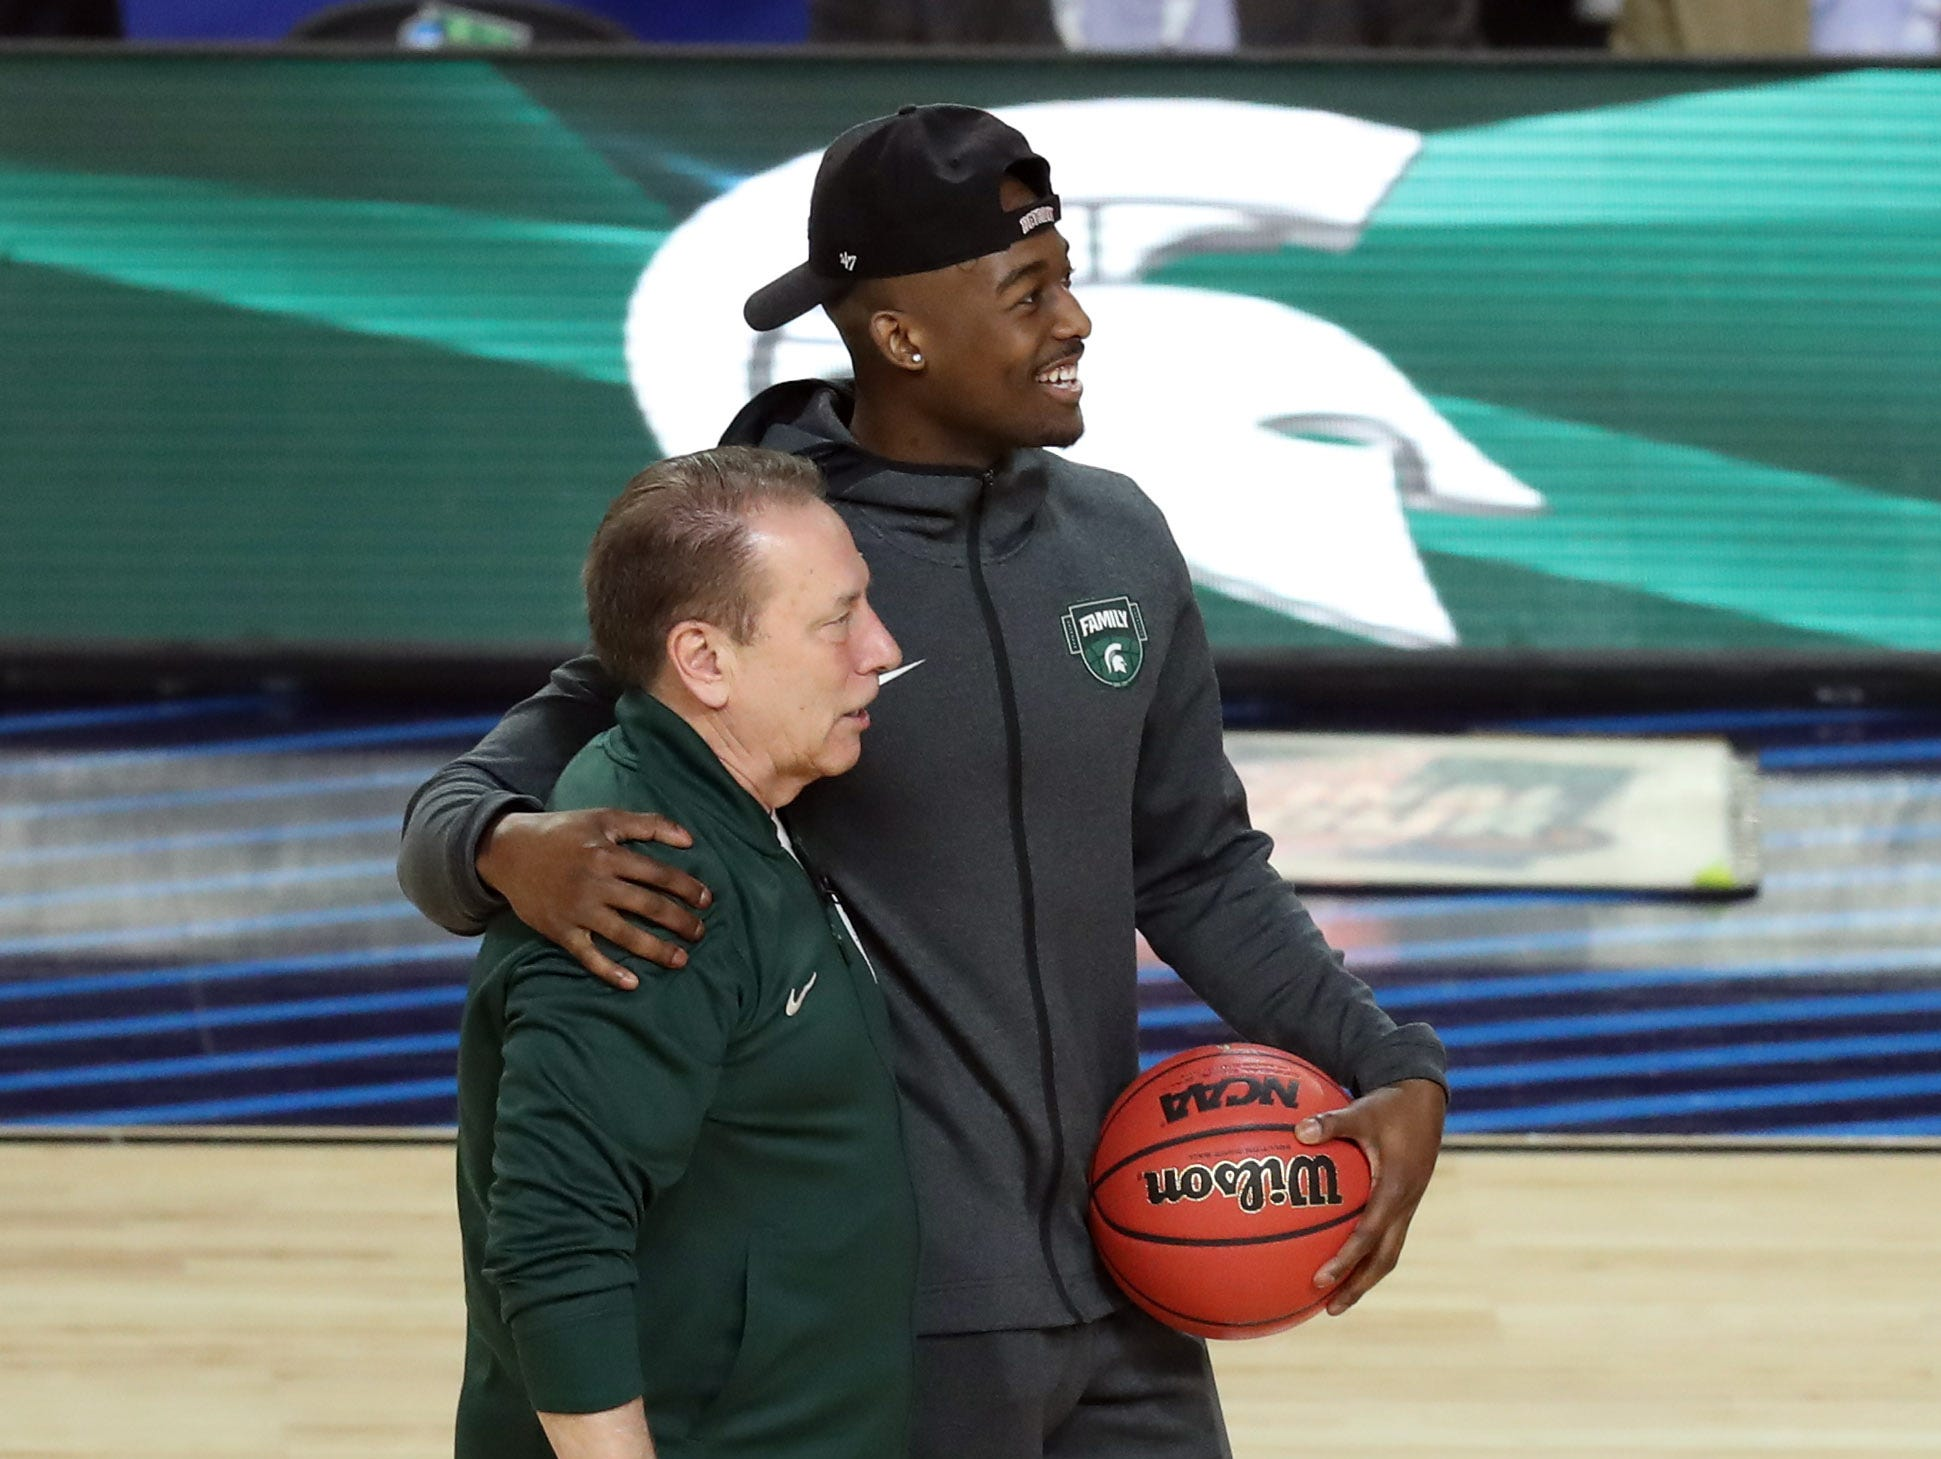 Apr 5, 2019; Minneapolis, MN, USA; Michigan State Spartans guard Joshua Langford (1) and head coach Tom Izzo embrace during practice for the 2019 men's Final Four at US Bank Stadium. Mandatory Credit: Brace Hemmelgarn-USA TODAY Sports